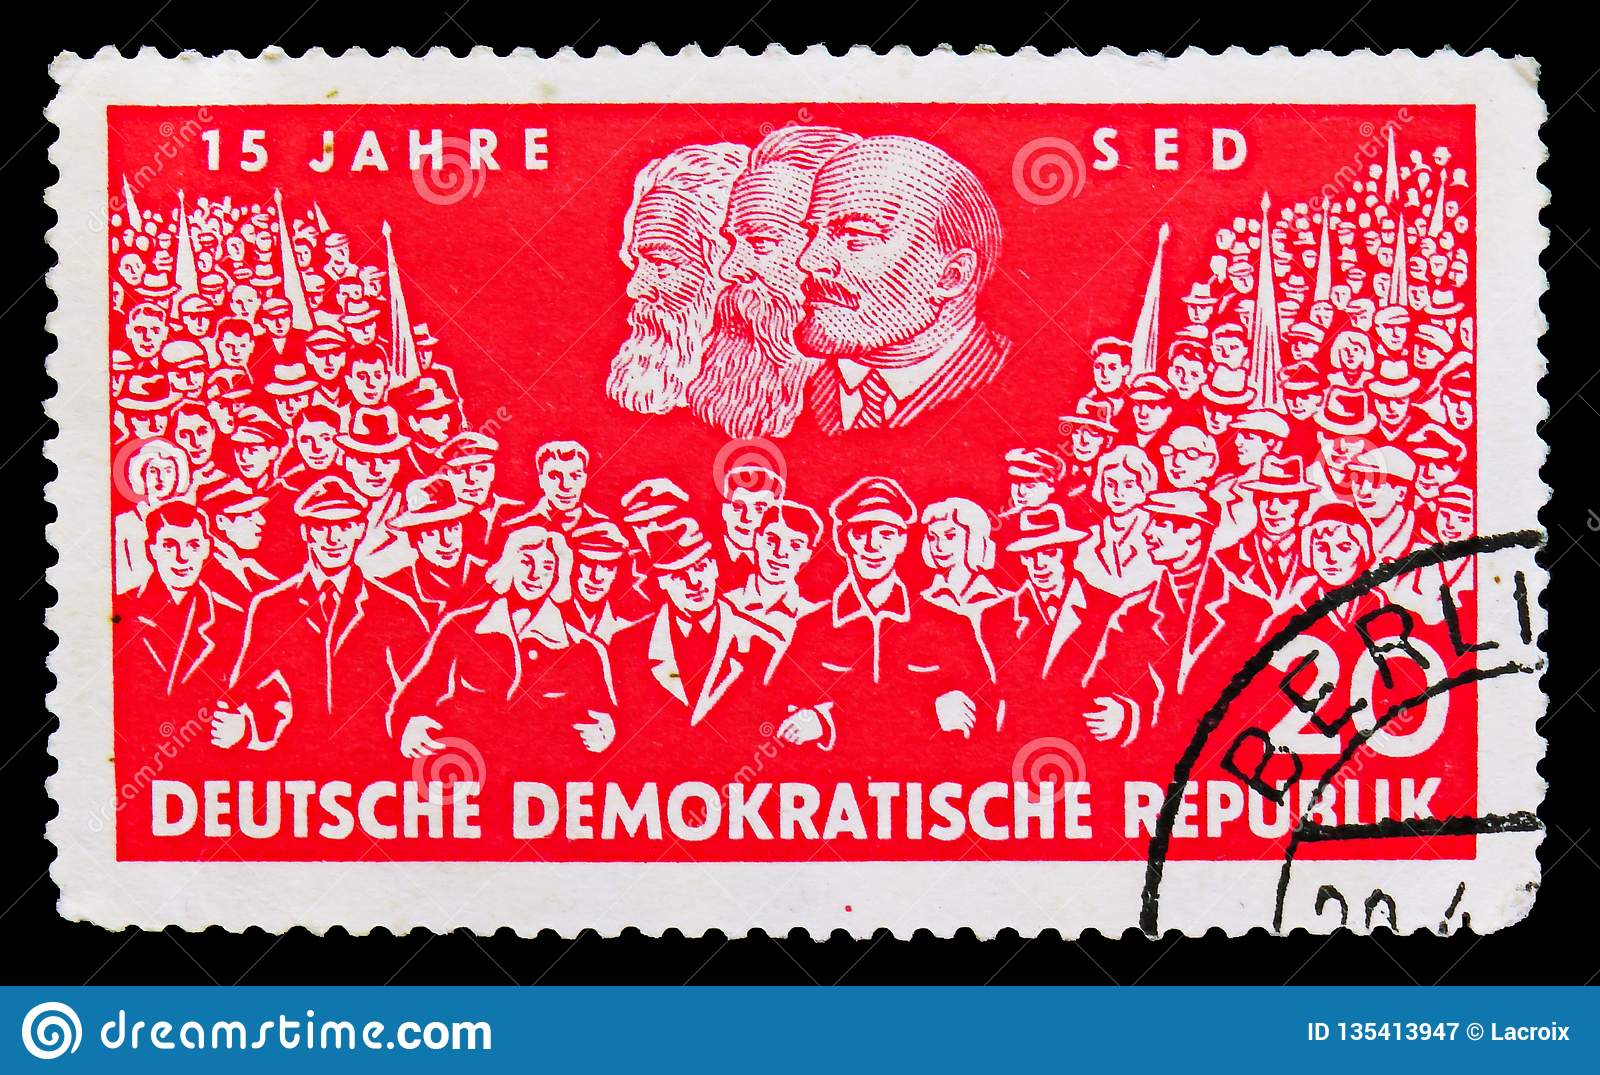 Union of two demonstrations, portraits of Marx, Engels and Lenin, 15 years Socialist Unity Party of Germany (SED) serie, circa